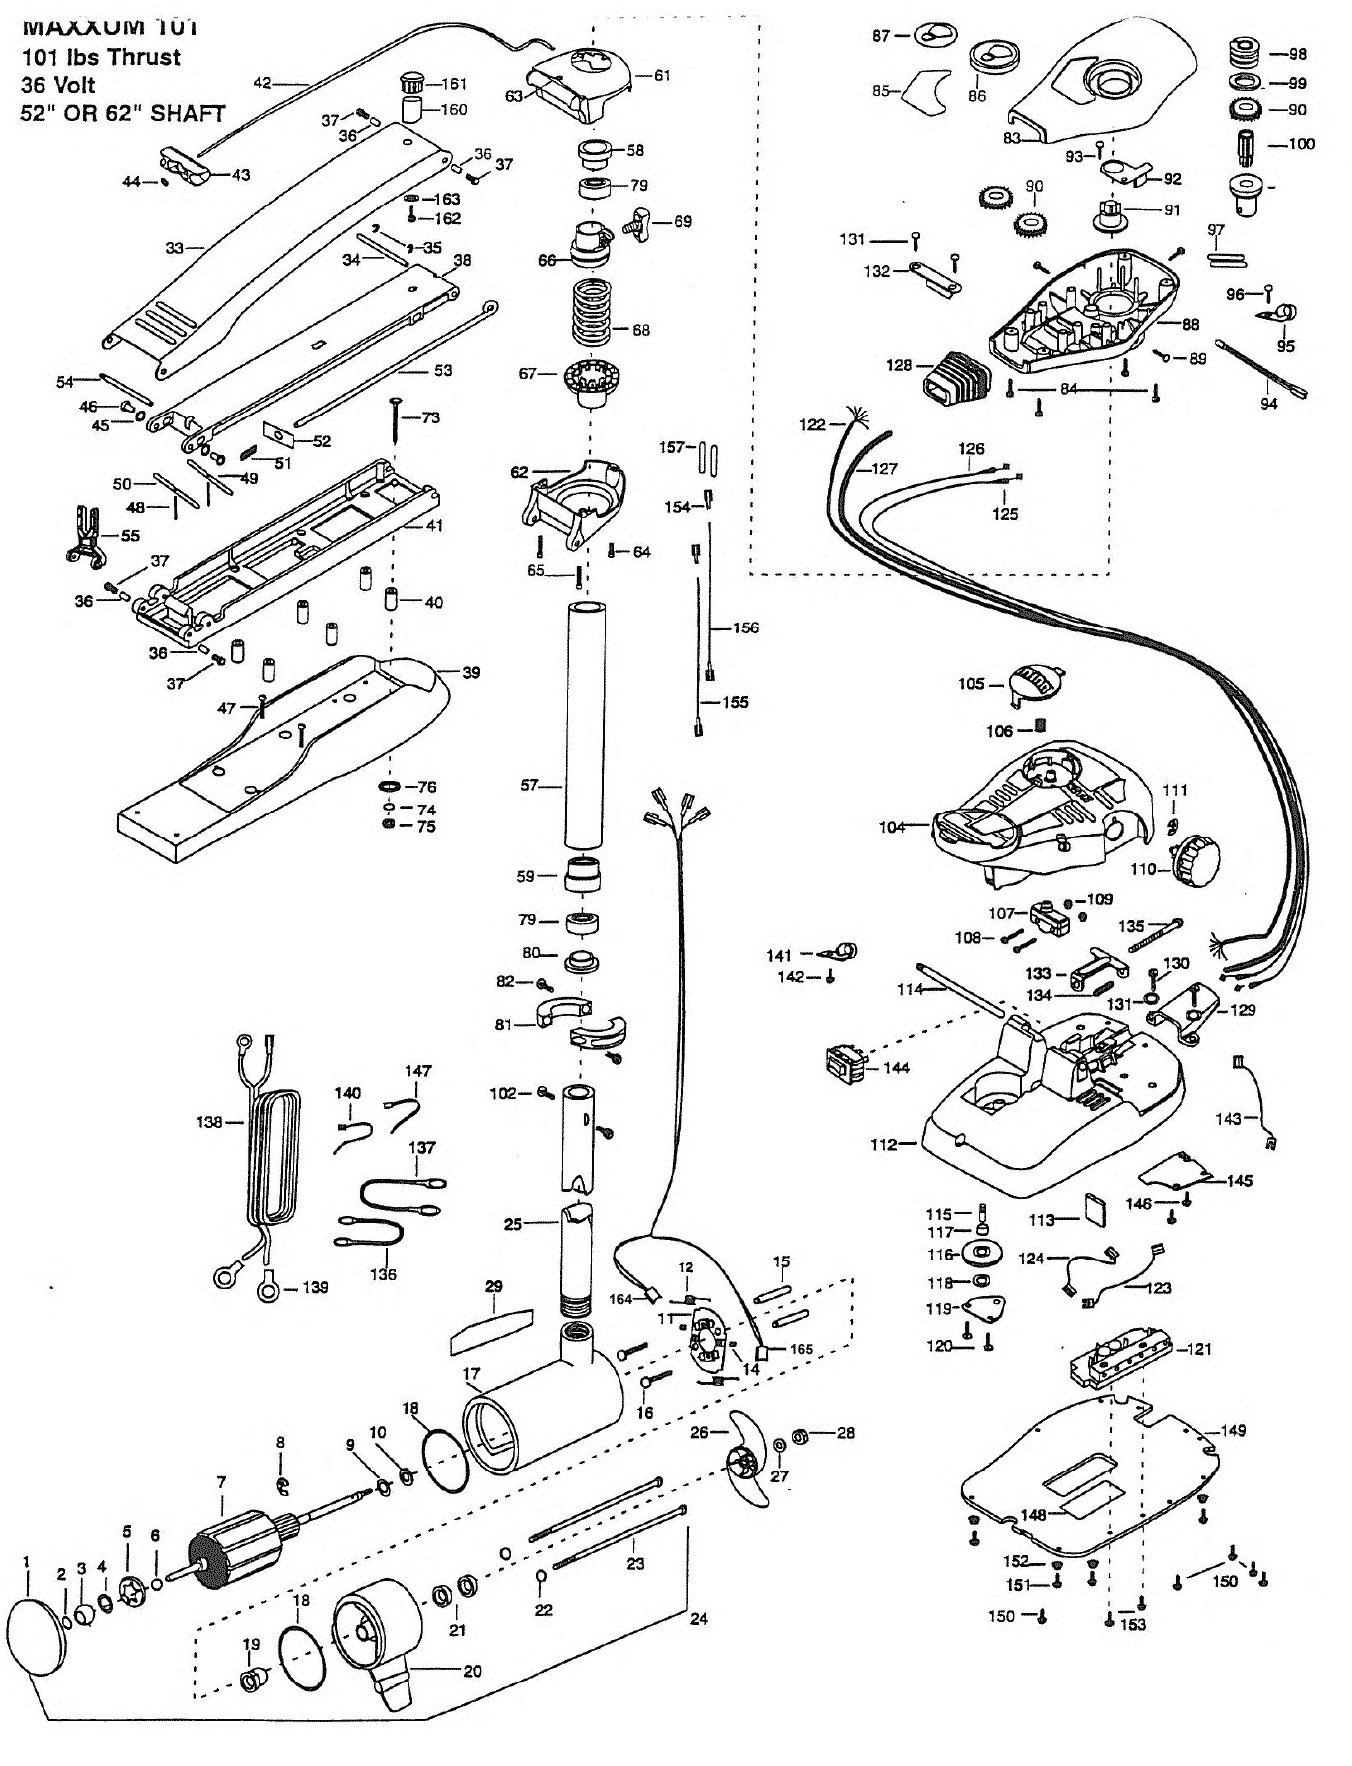 Diagram Of Electric Car Plug